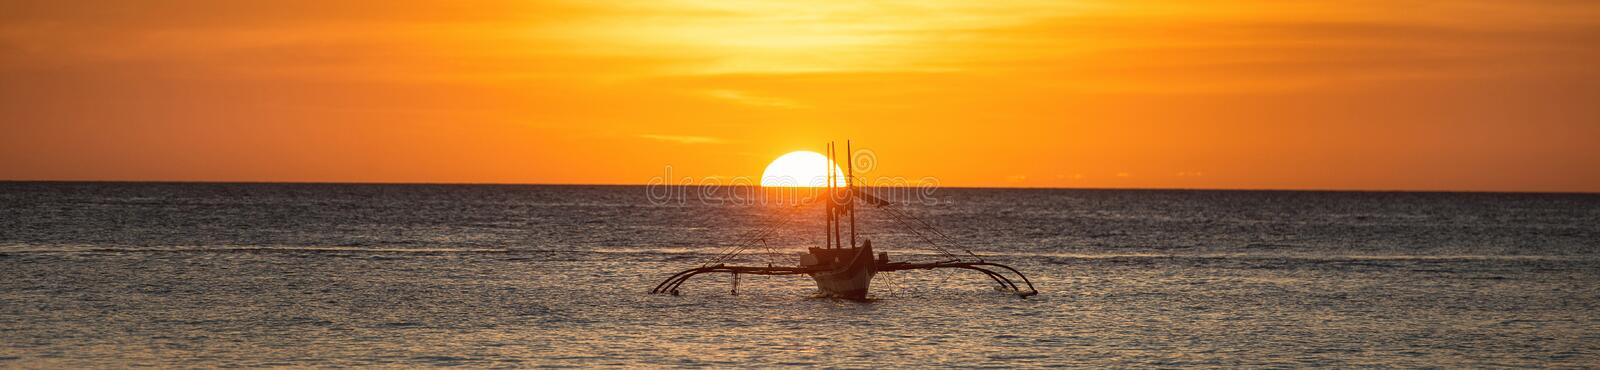 A wide view of the sea and sunset royalty free stock images